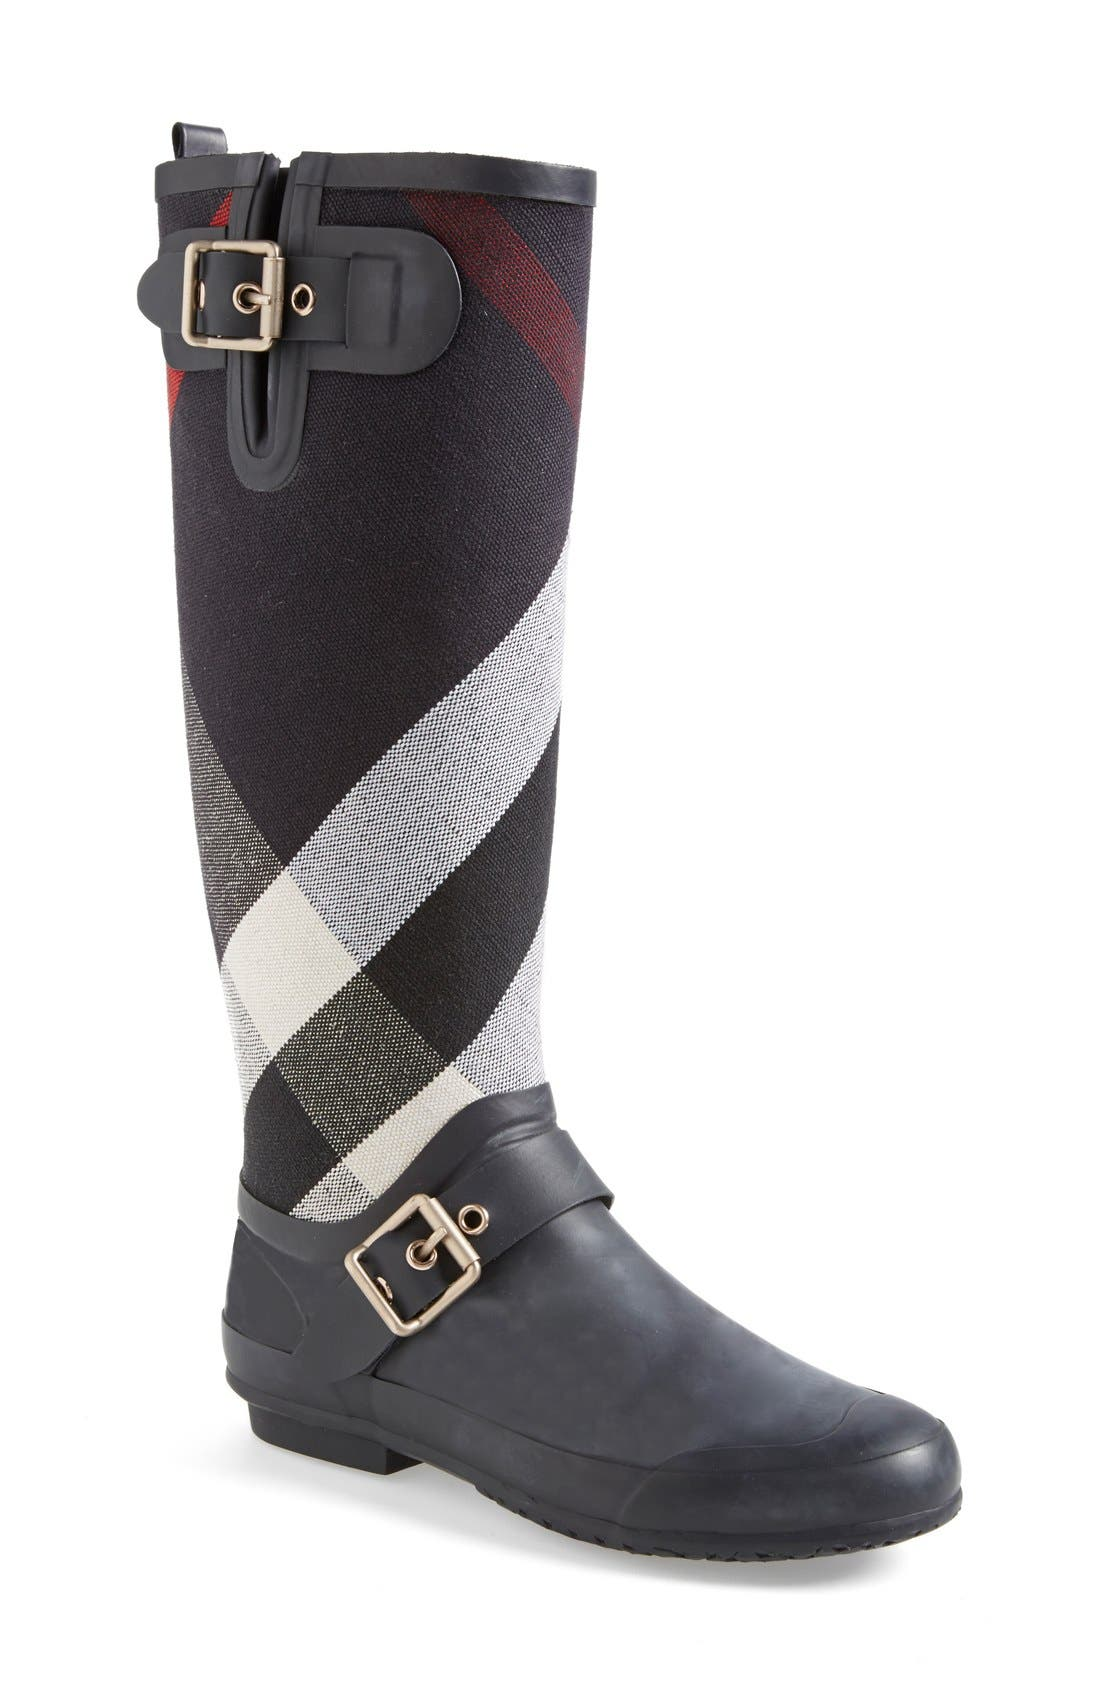 Alternate Image 1 Selected - Burberry 'Birkback' Rain Boot (Women) (Wide Calf)